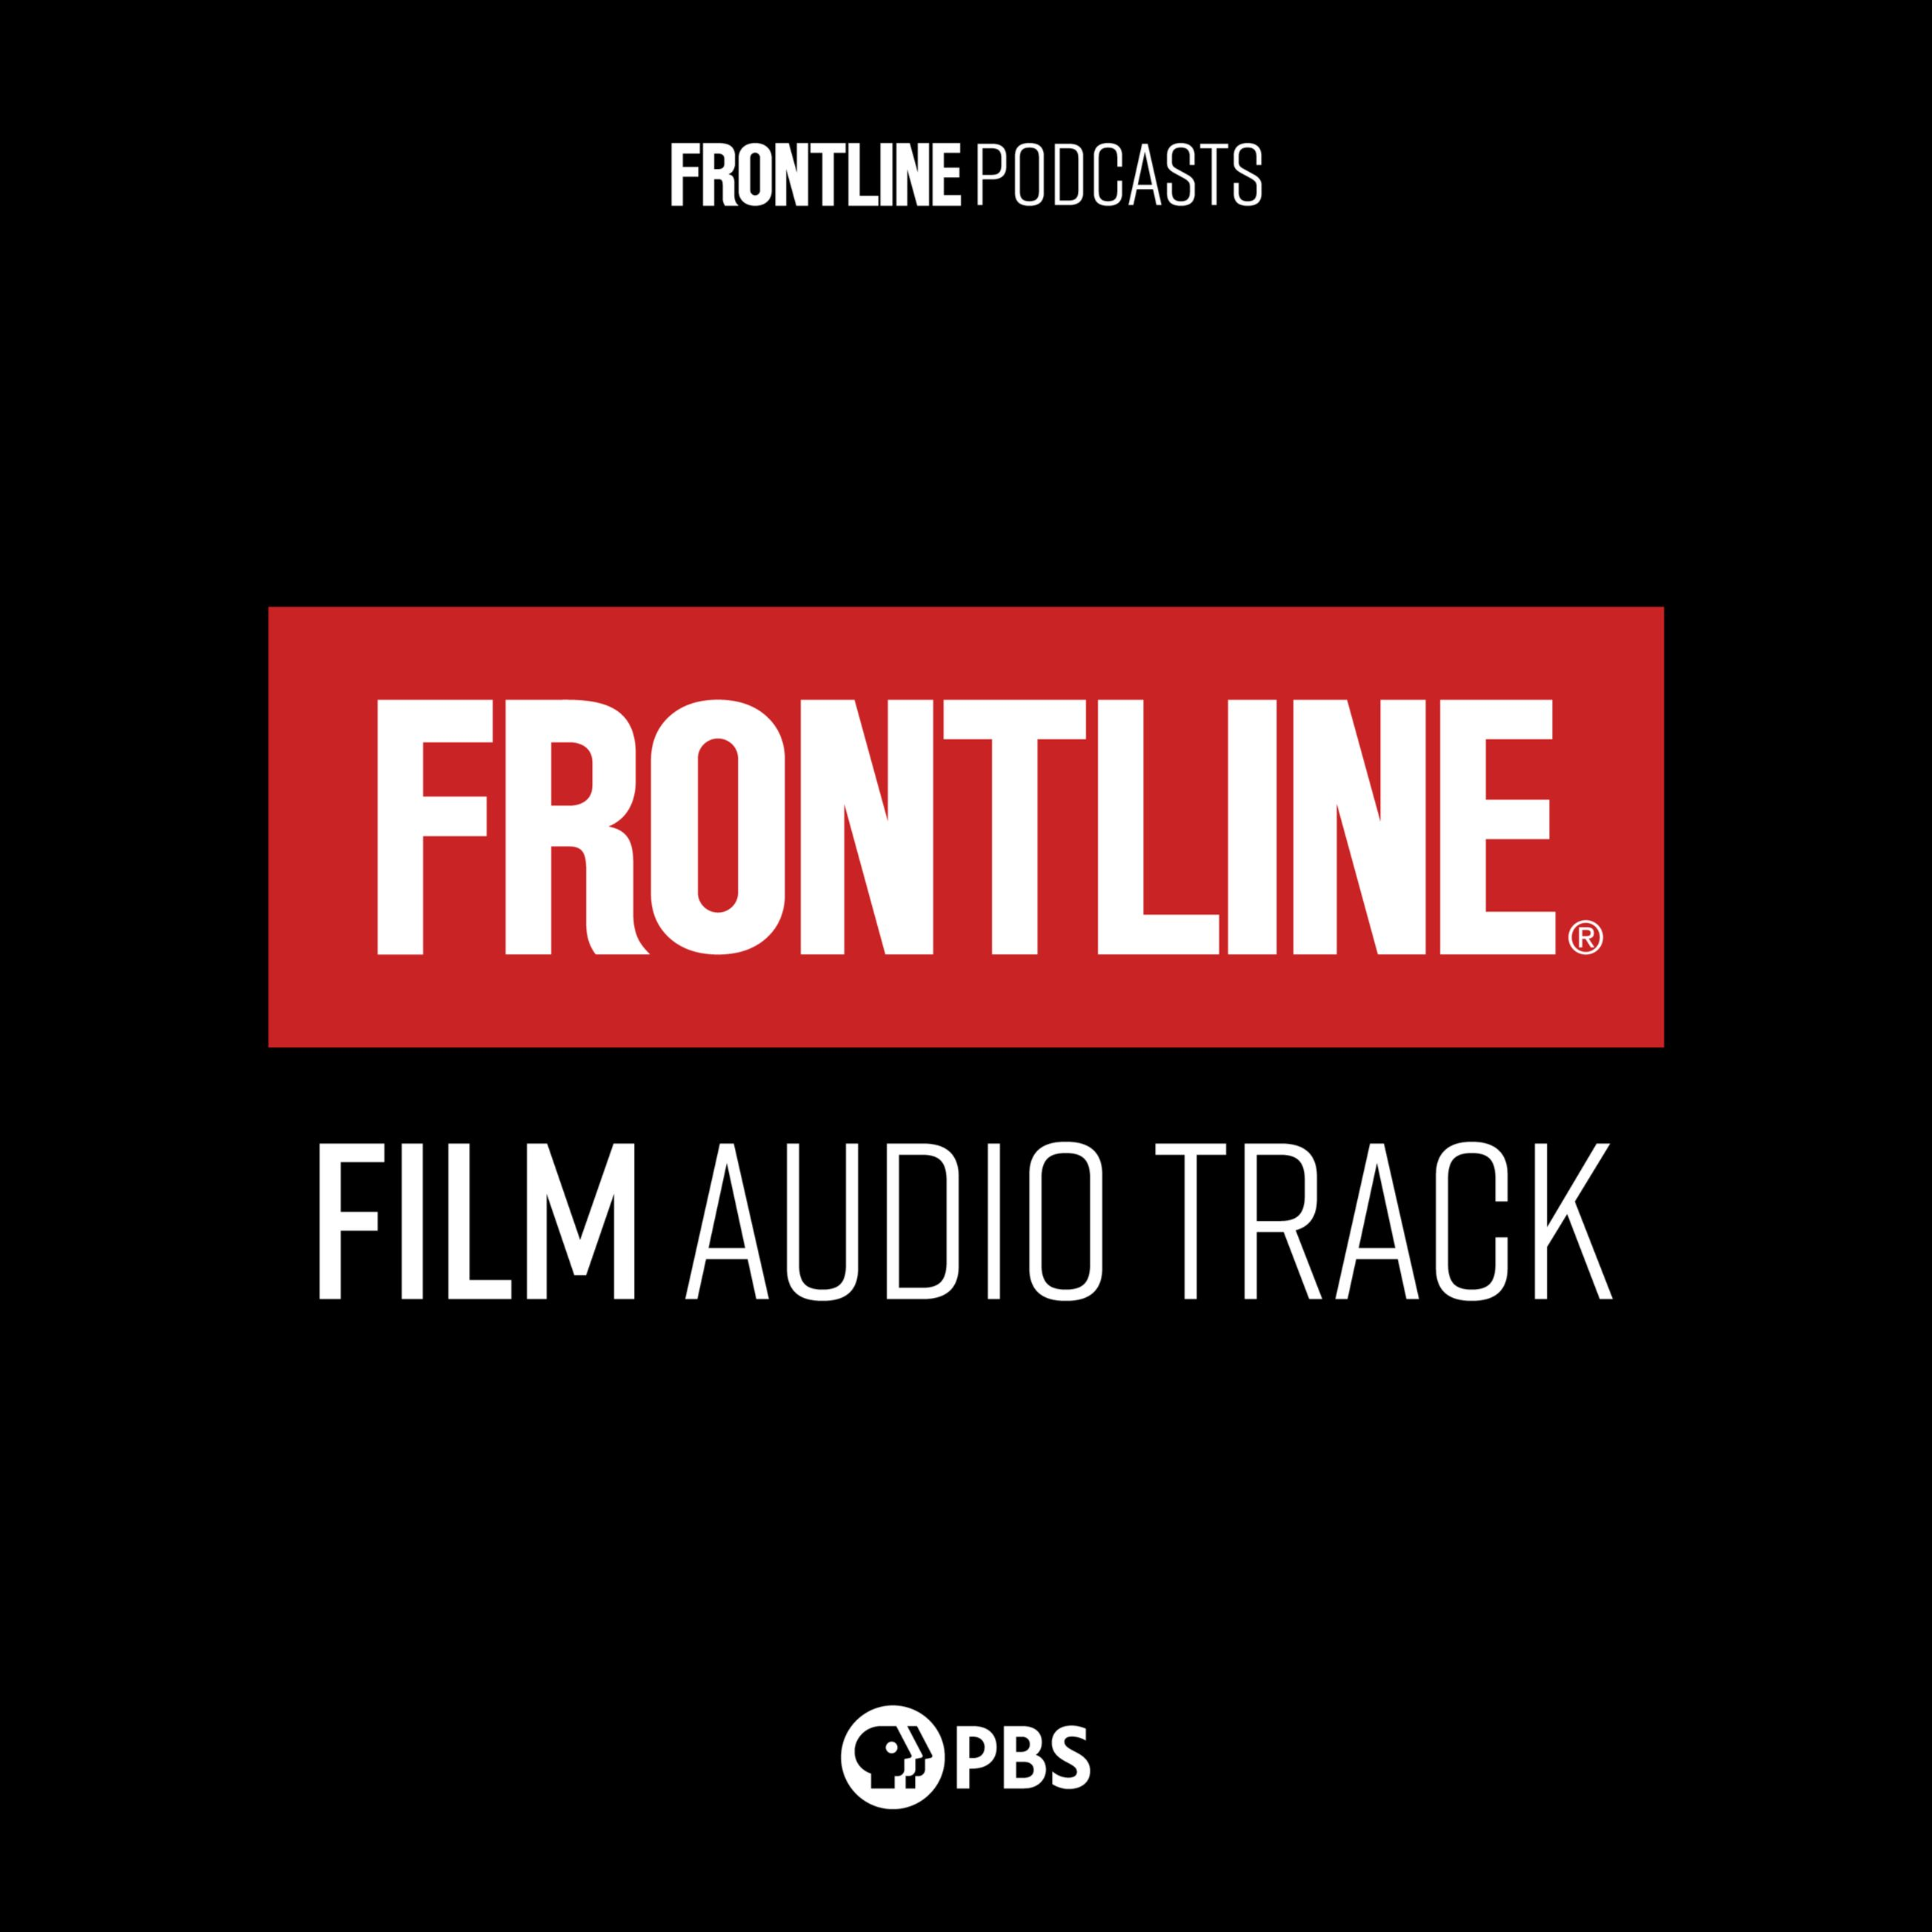 FRONTLINE: Audiocast | PBS